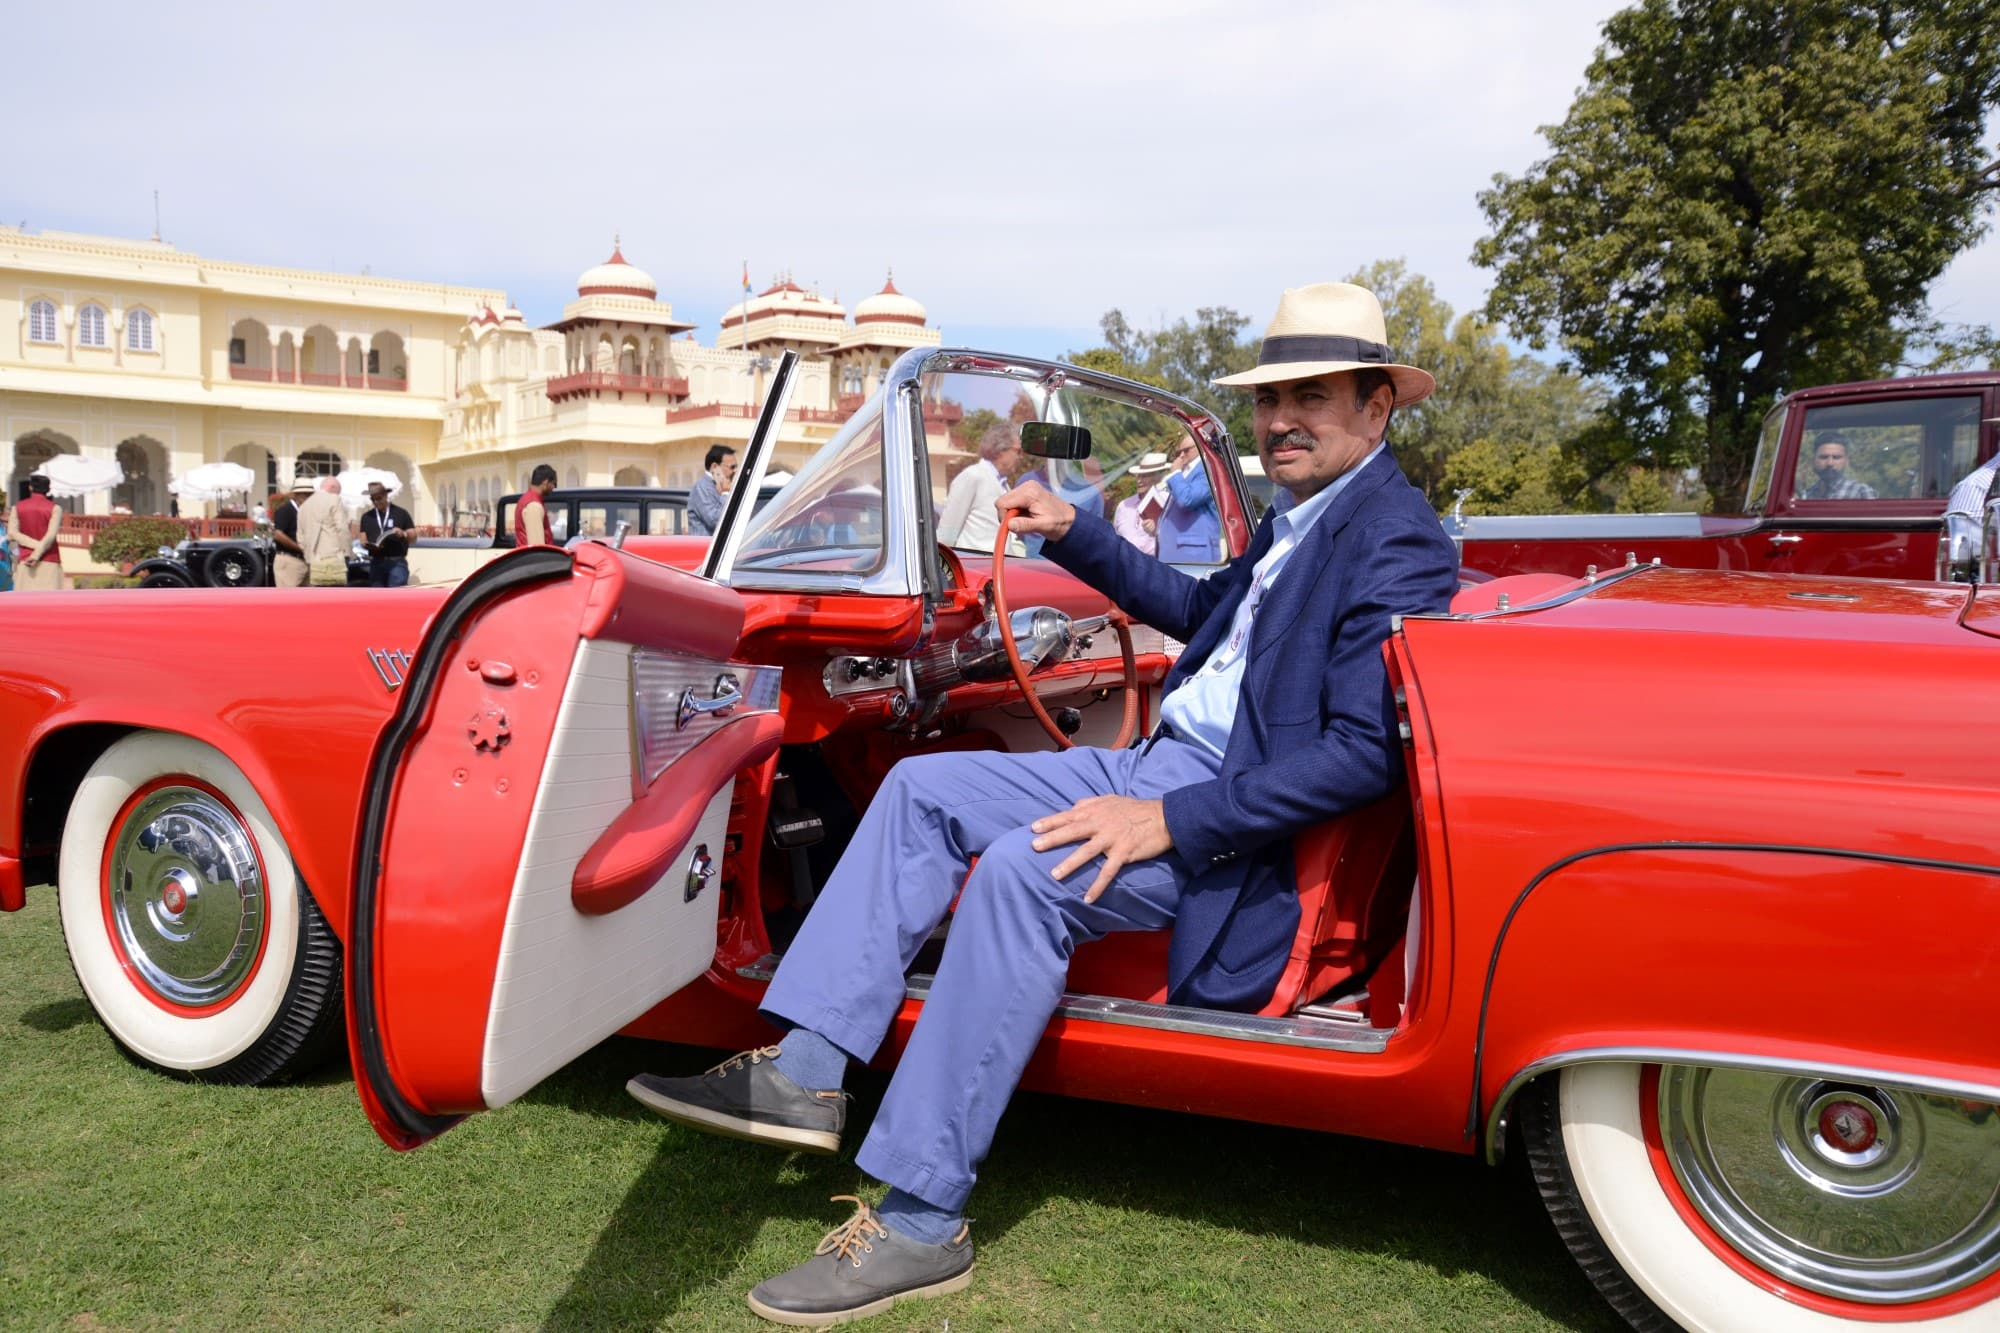 Cartier Travel With Style Concours d'Elegance, Curator- Rana Manvendra Singh of Barwani.